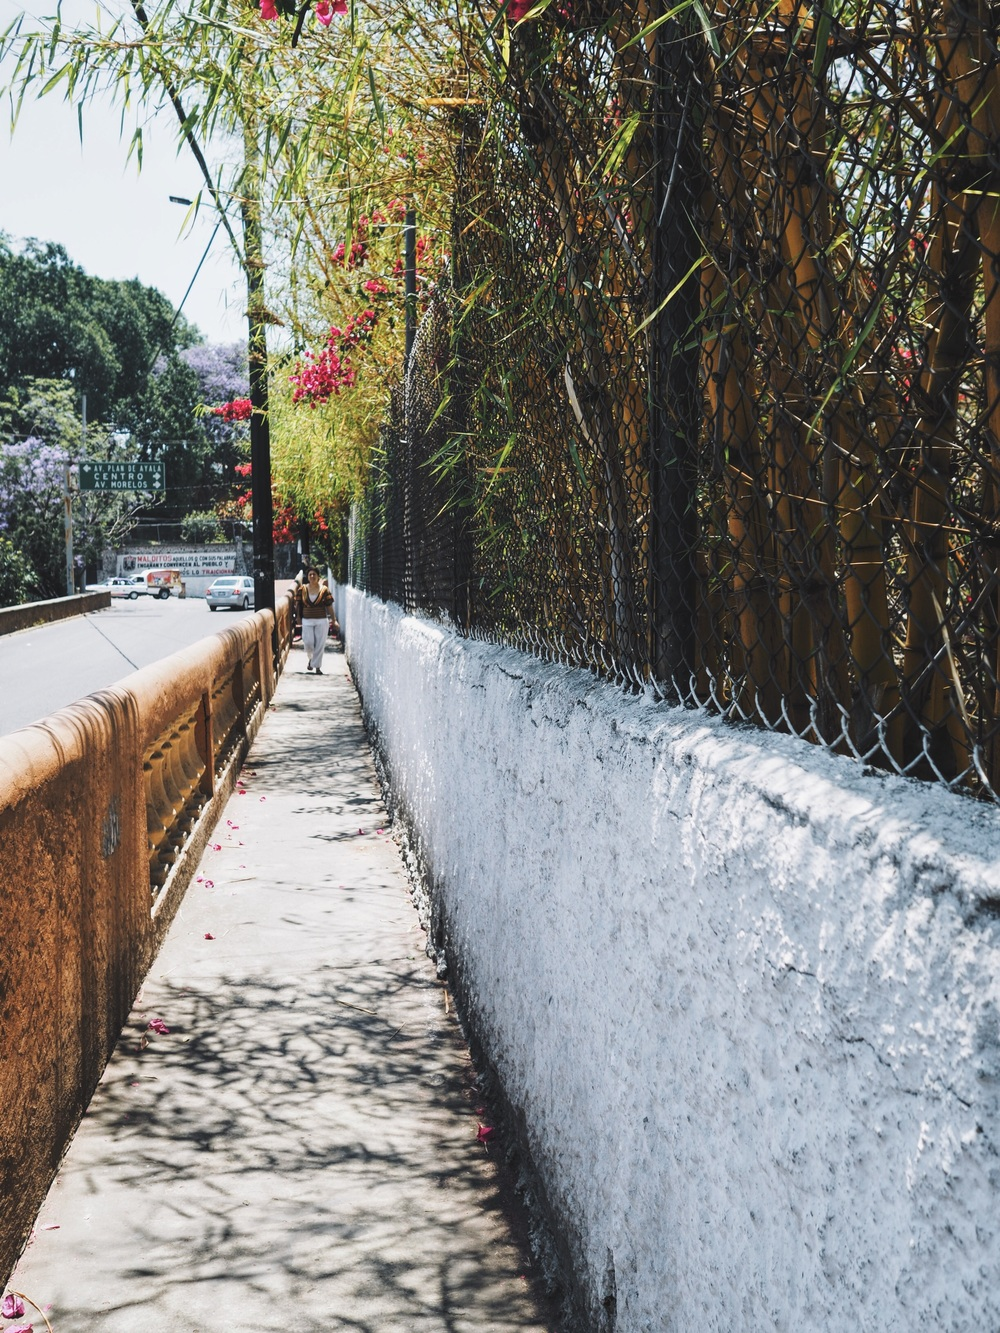 Walking around Cuernavaca